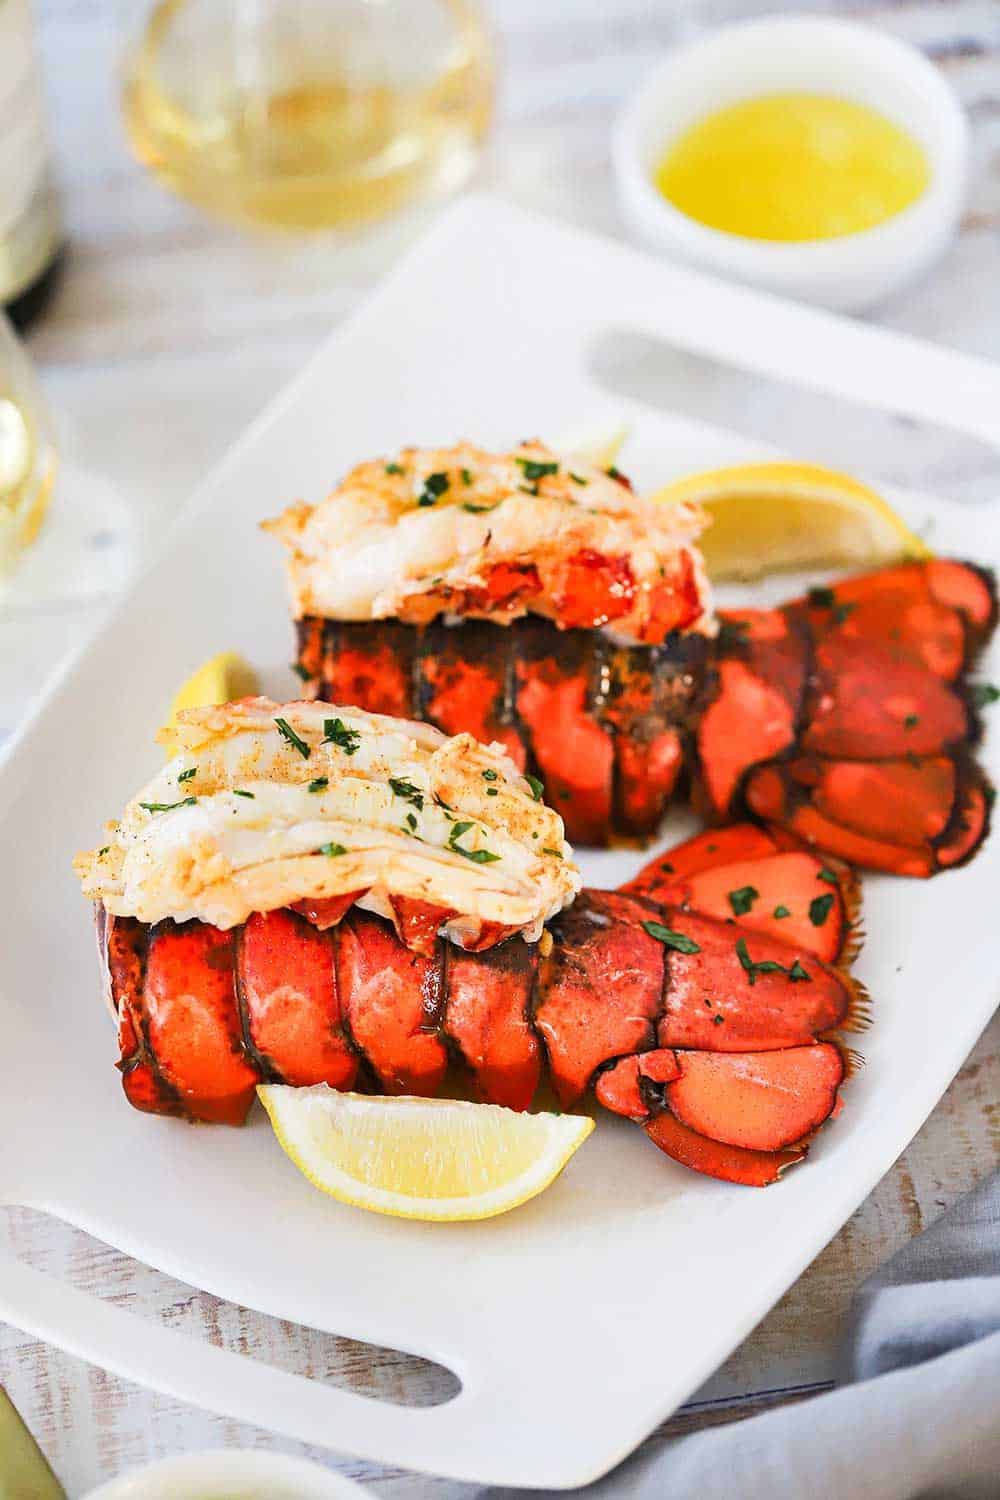 Two fully cooked lobster tails with meat on top of the lobster tail, all sitting on a platter next to lemon wedges and melted butter.